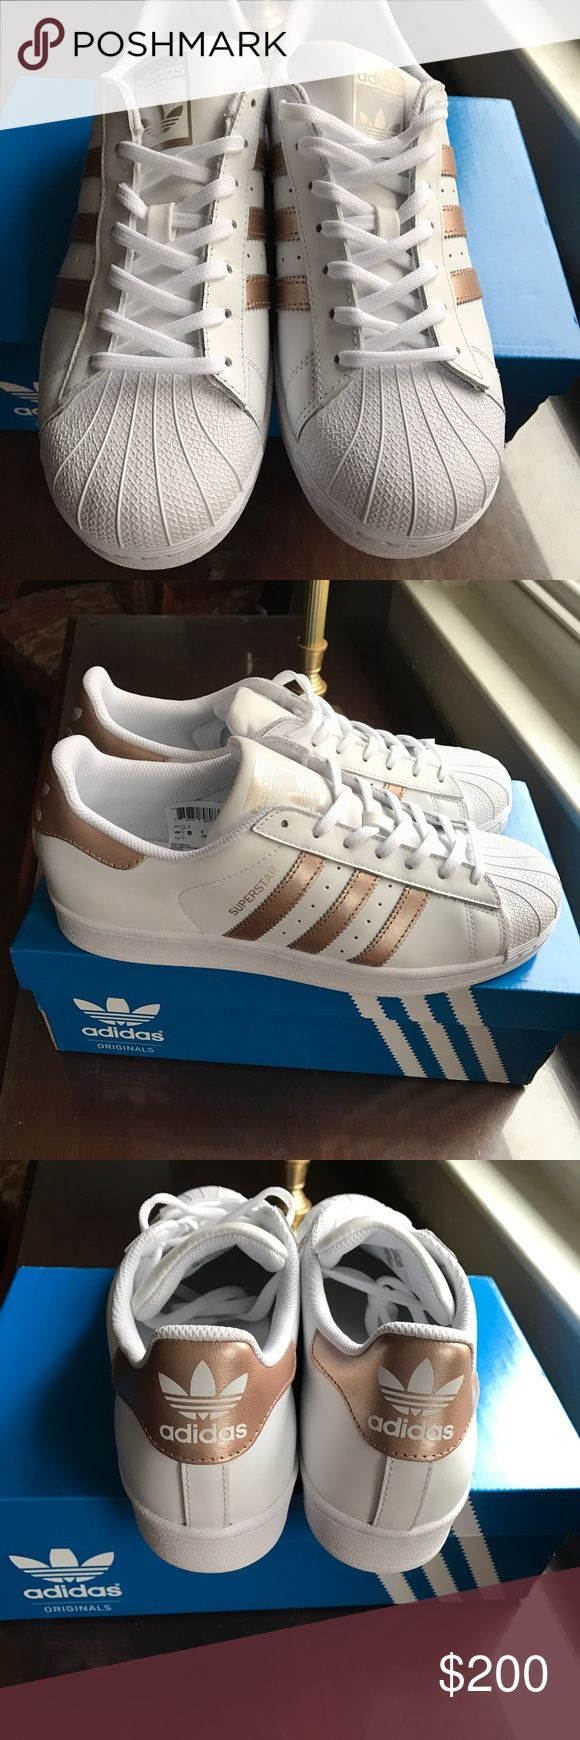 best sneakers 23e02 e0802 ... italy adidas superstar blush rosa off bianca 92999 86df1